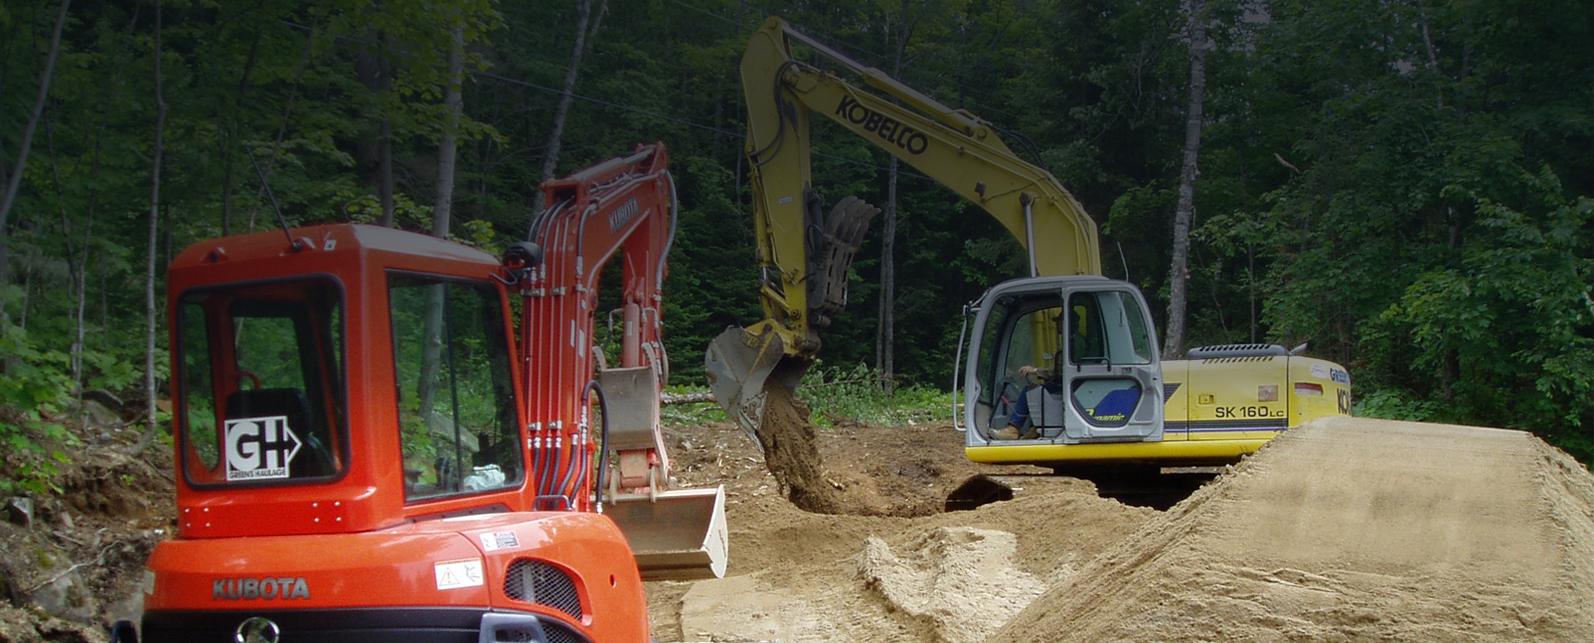 Septic System Installation by Green's Haulage